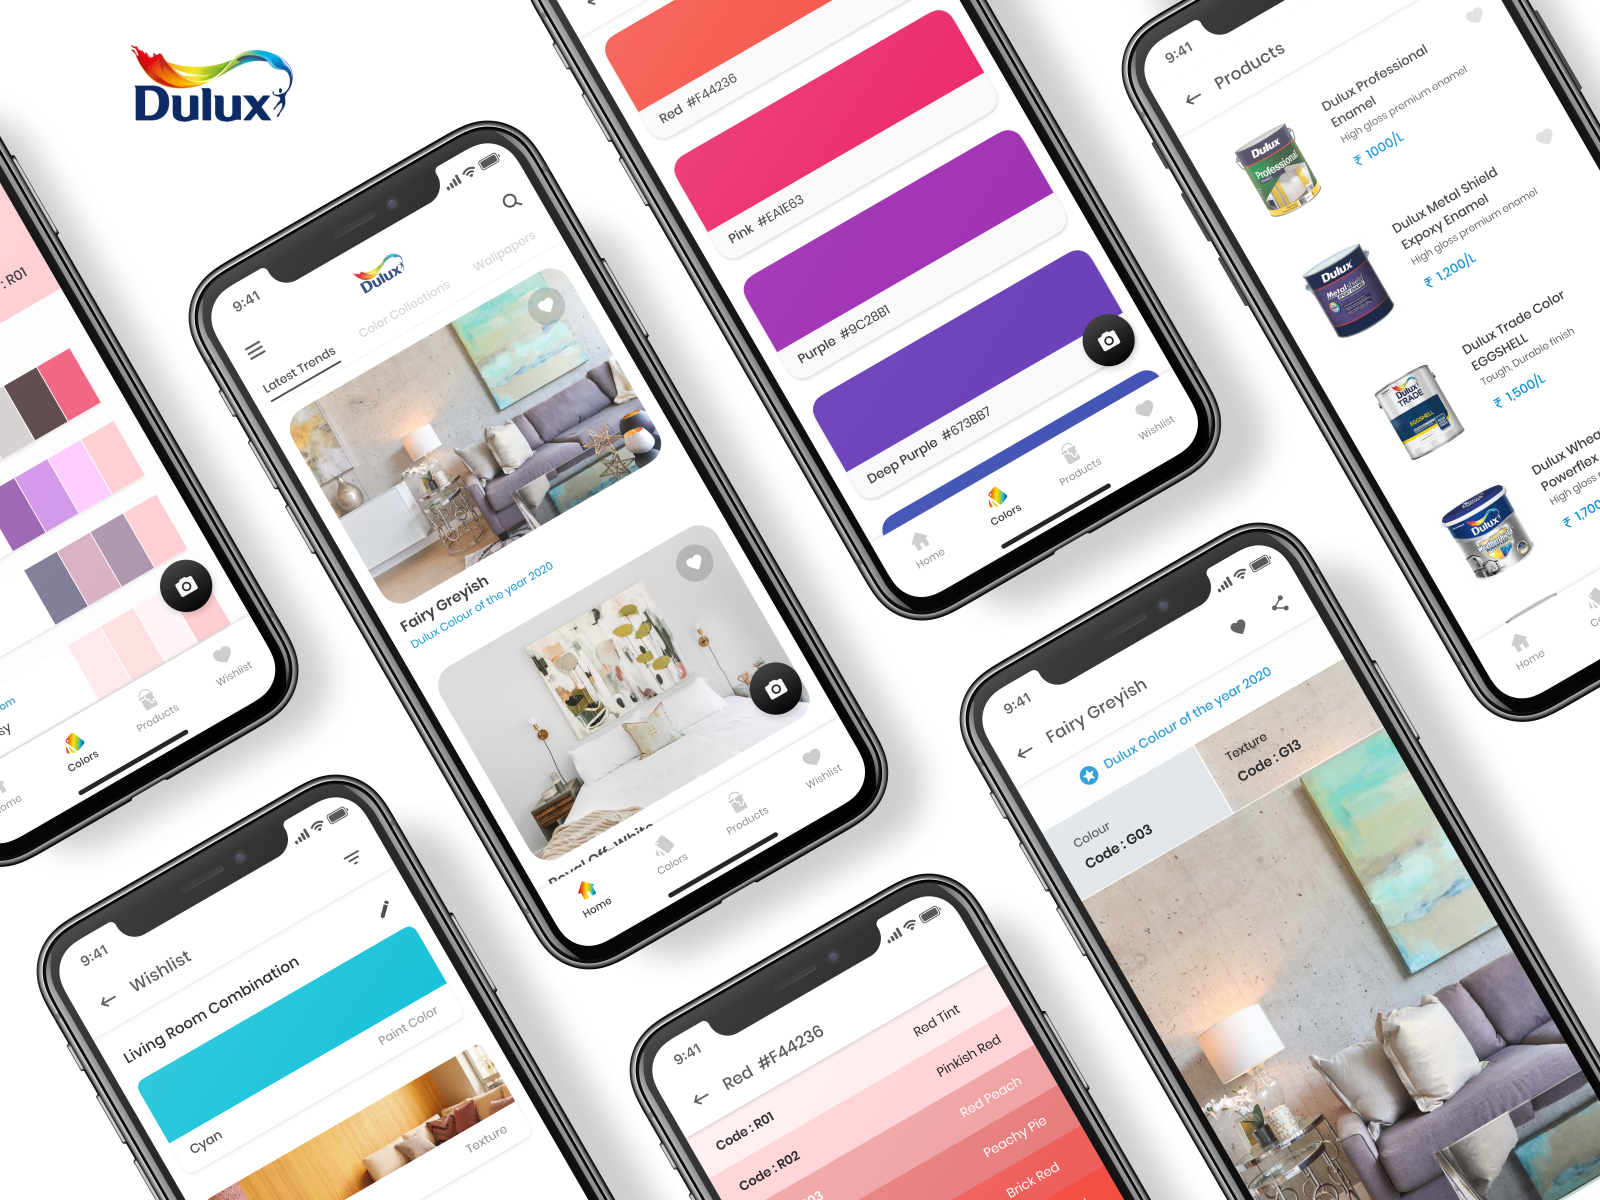 Dulux Visualizer Re-design Concept by jinal mehta on Dribbble